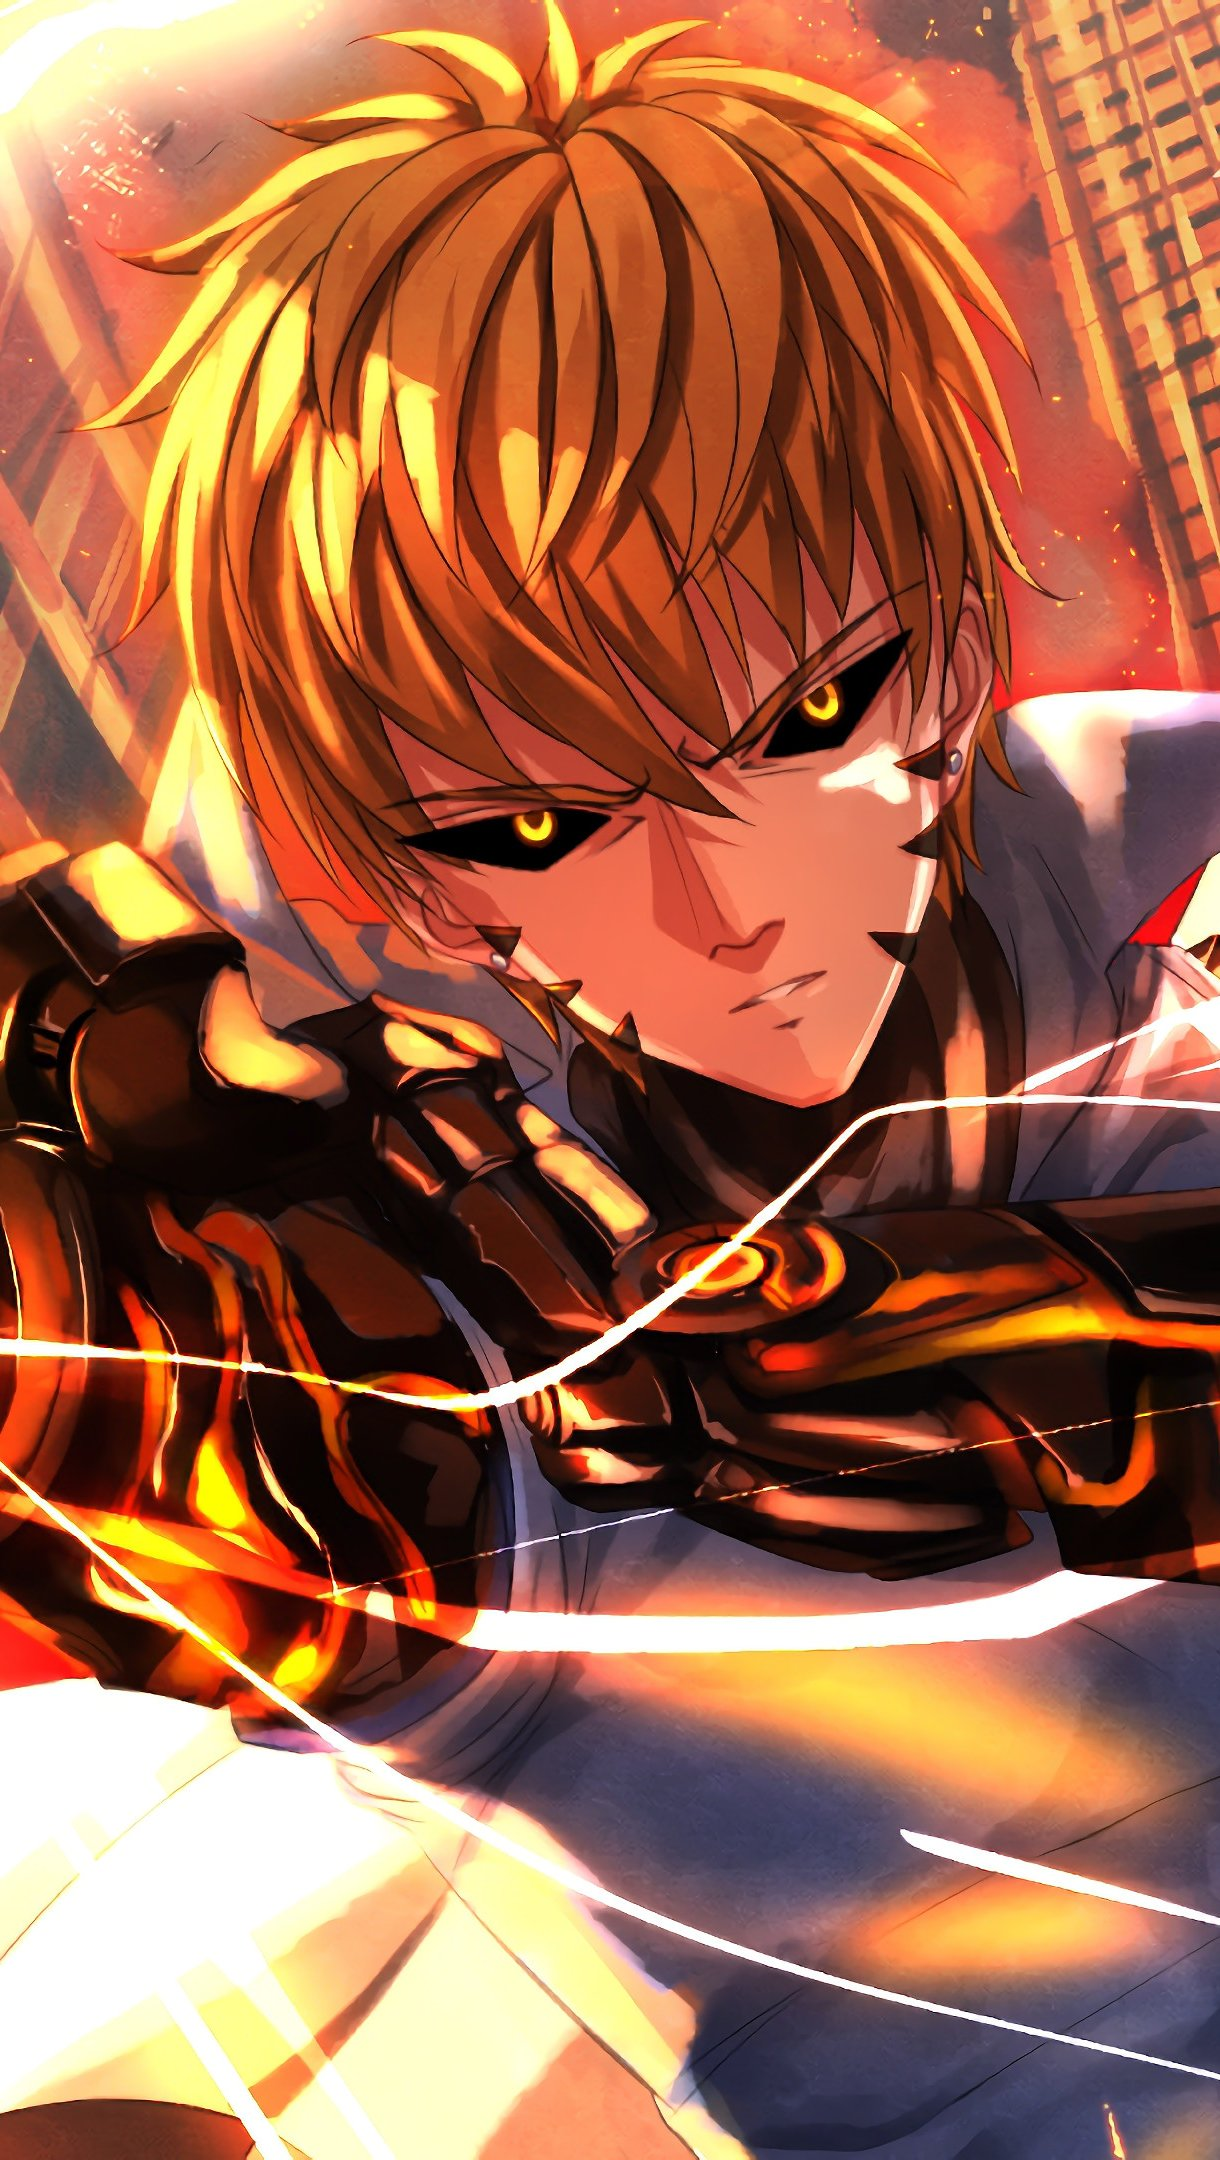 Search free one punch man wallpapers on zedge and personalize your phone to suit you. Genos One Punch Man Anime Wallpaper 4k Ultra HD ID:3220